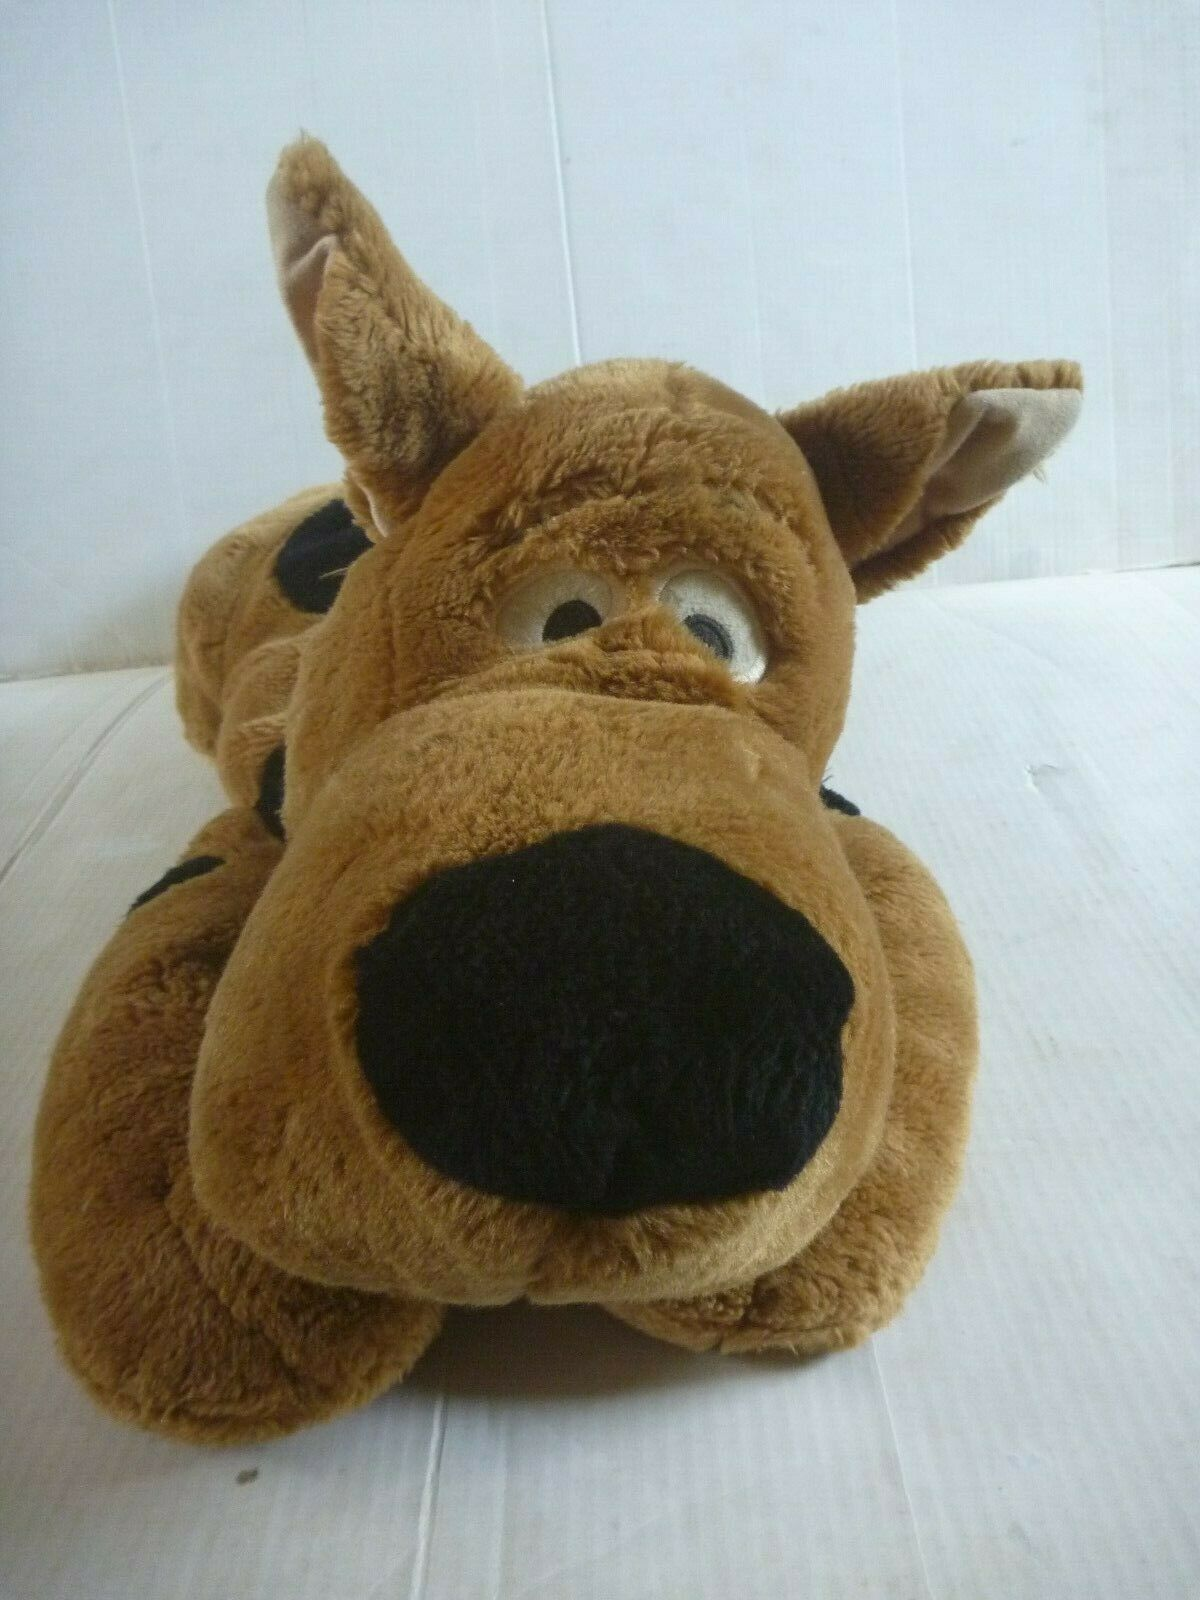 Hanna Barbera SCOOBY DOO large CUDDLE PILLOW soft plush toy 2001 WBSS exclusive